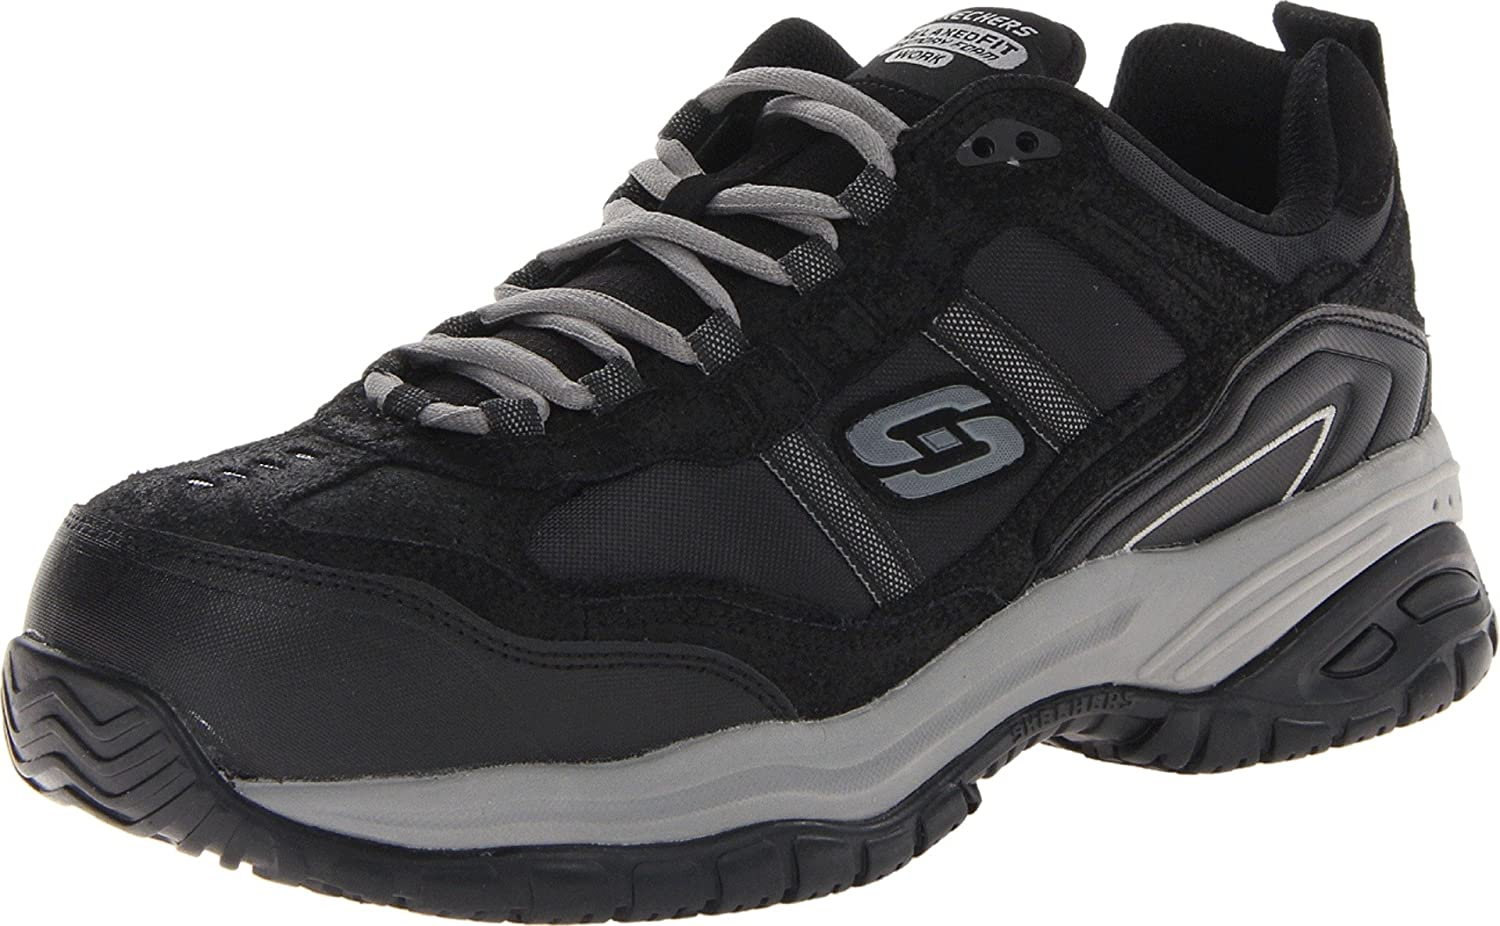 Skechers Men's Work Relaxed Fit Soft Stride Grinnel Comp Skechers for Work